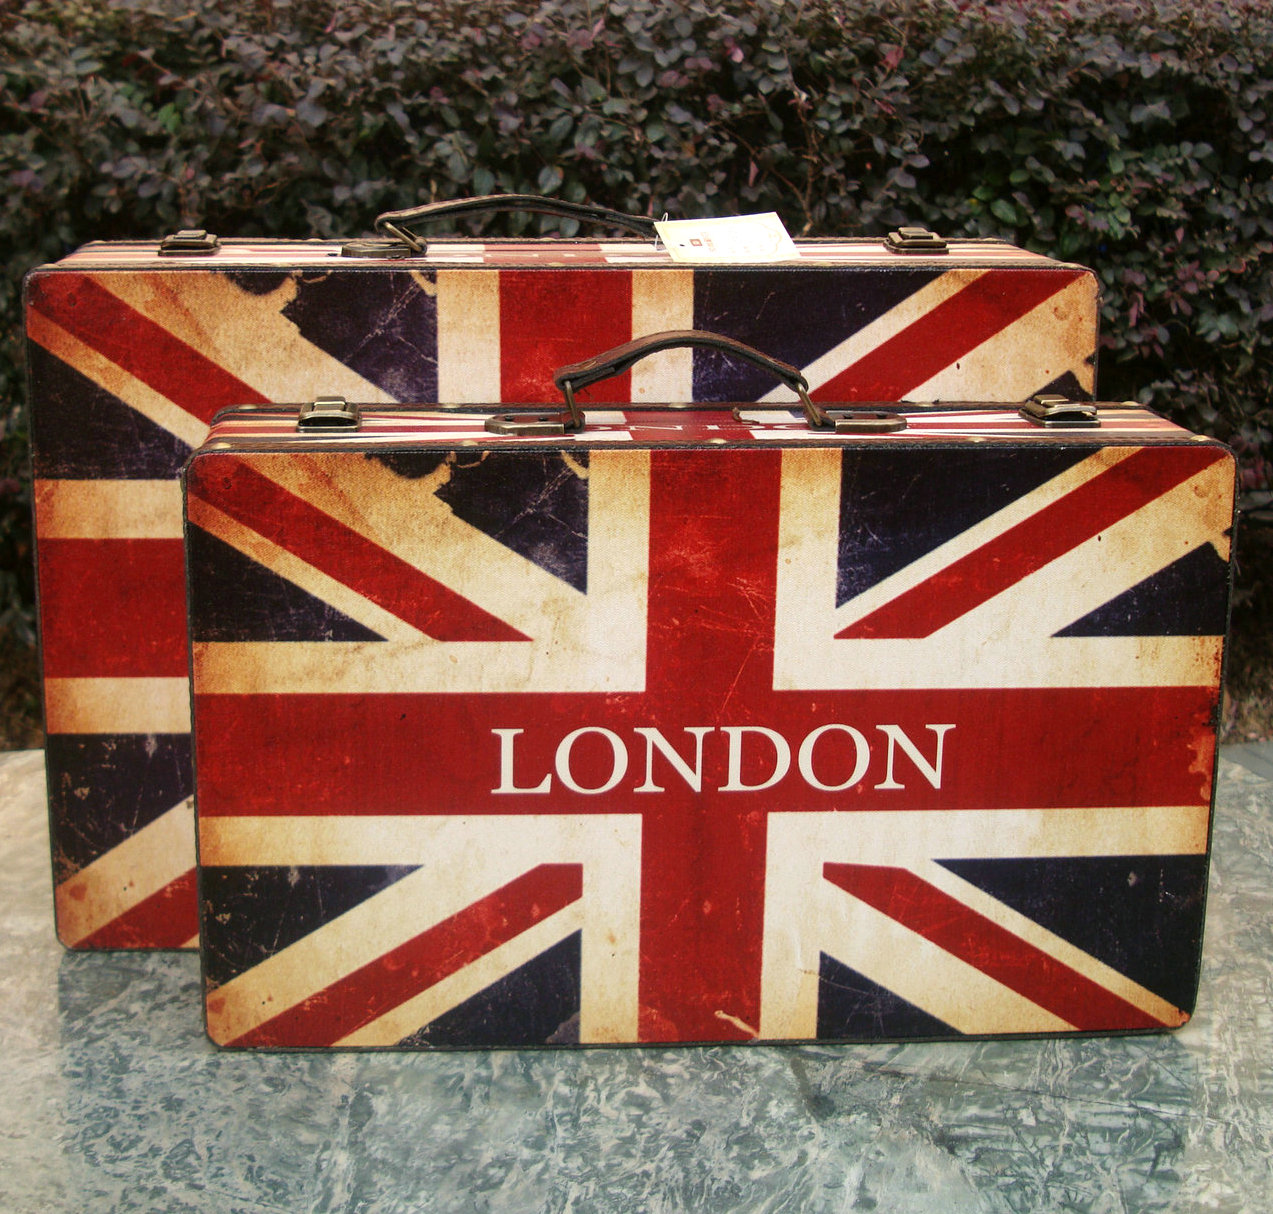 Vintage Luggage Storage Boxes | Luggage And Suitcases